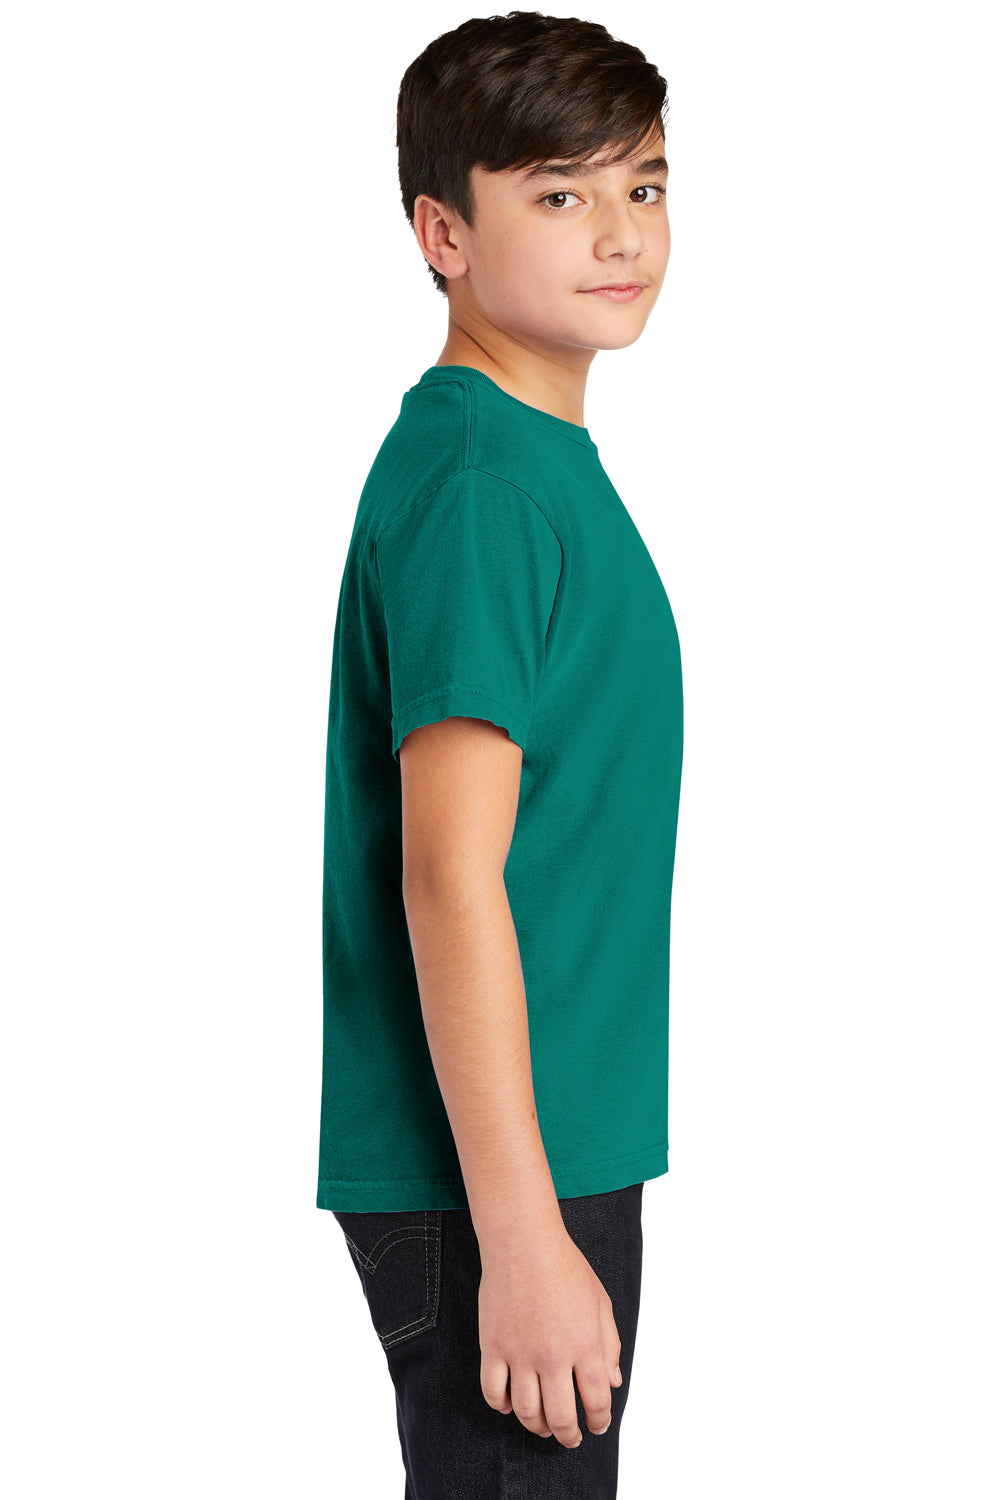 Comfort Colors C9018 Youth Short Sleeve Crewneck T-Shirt Seafoam Green Side